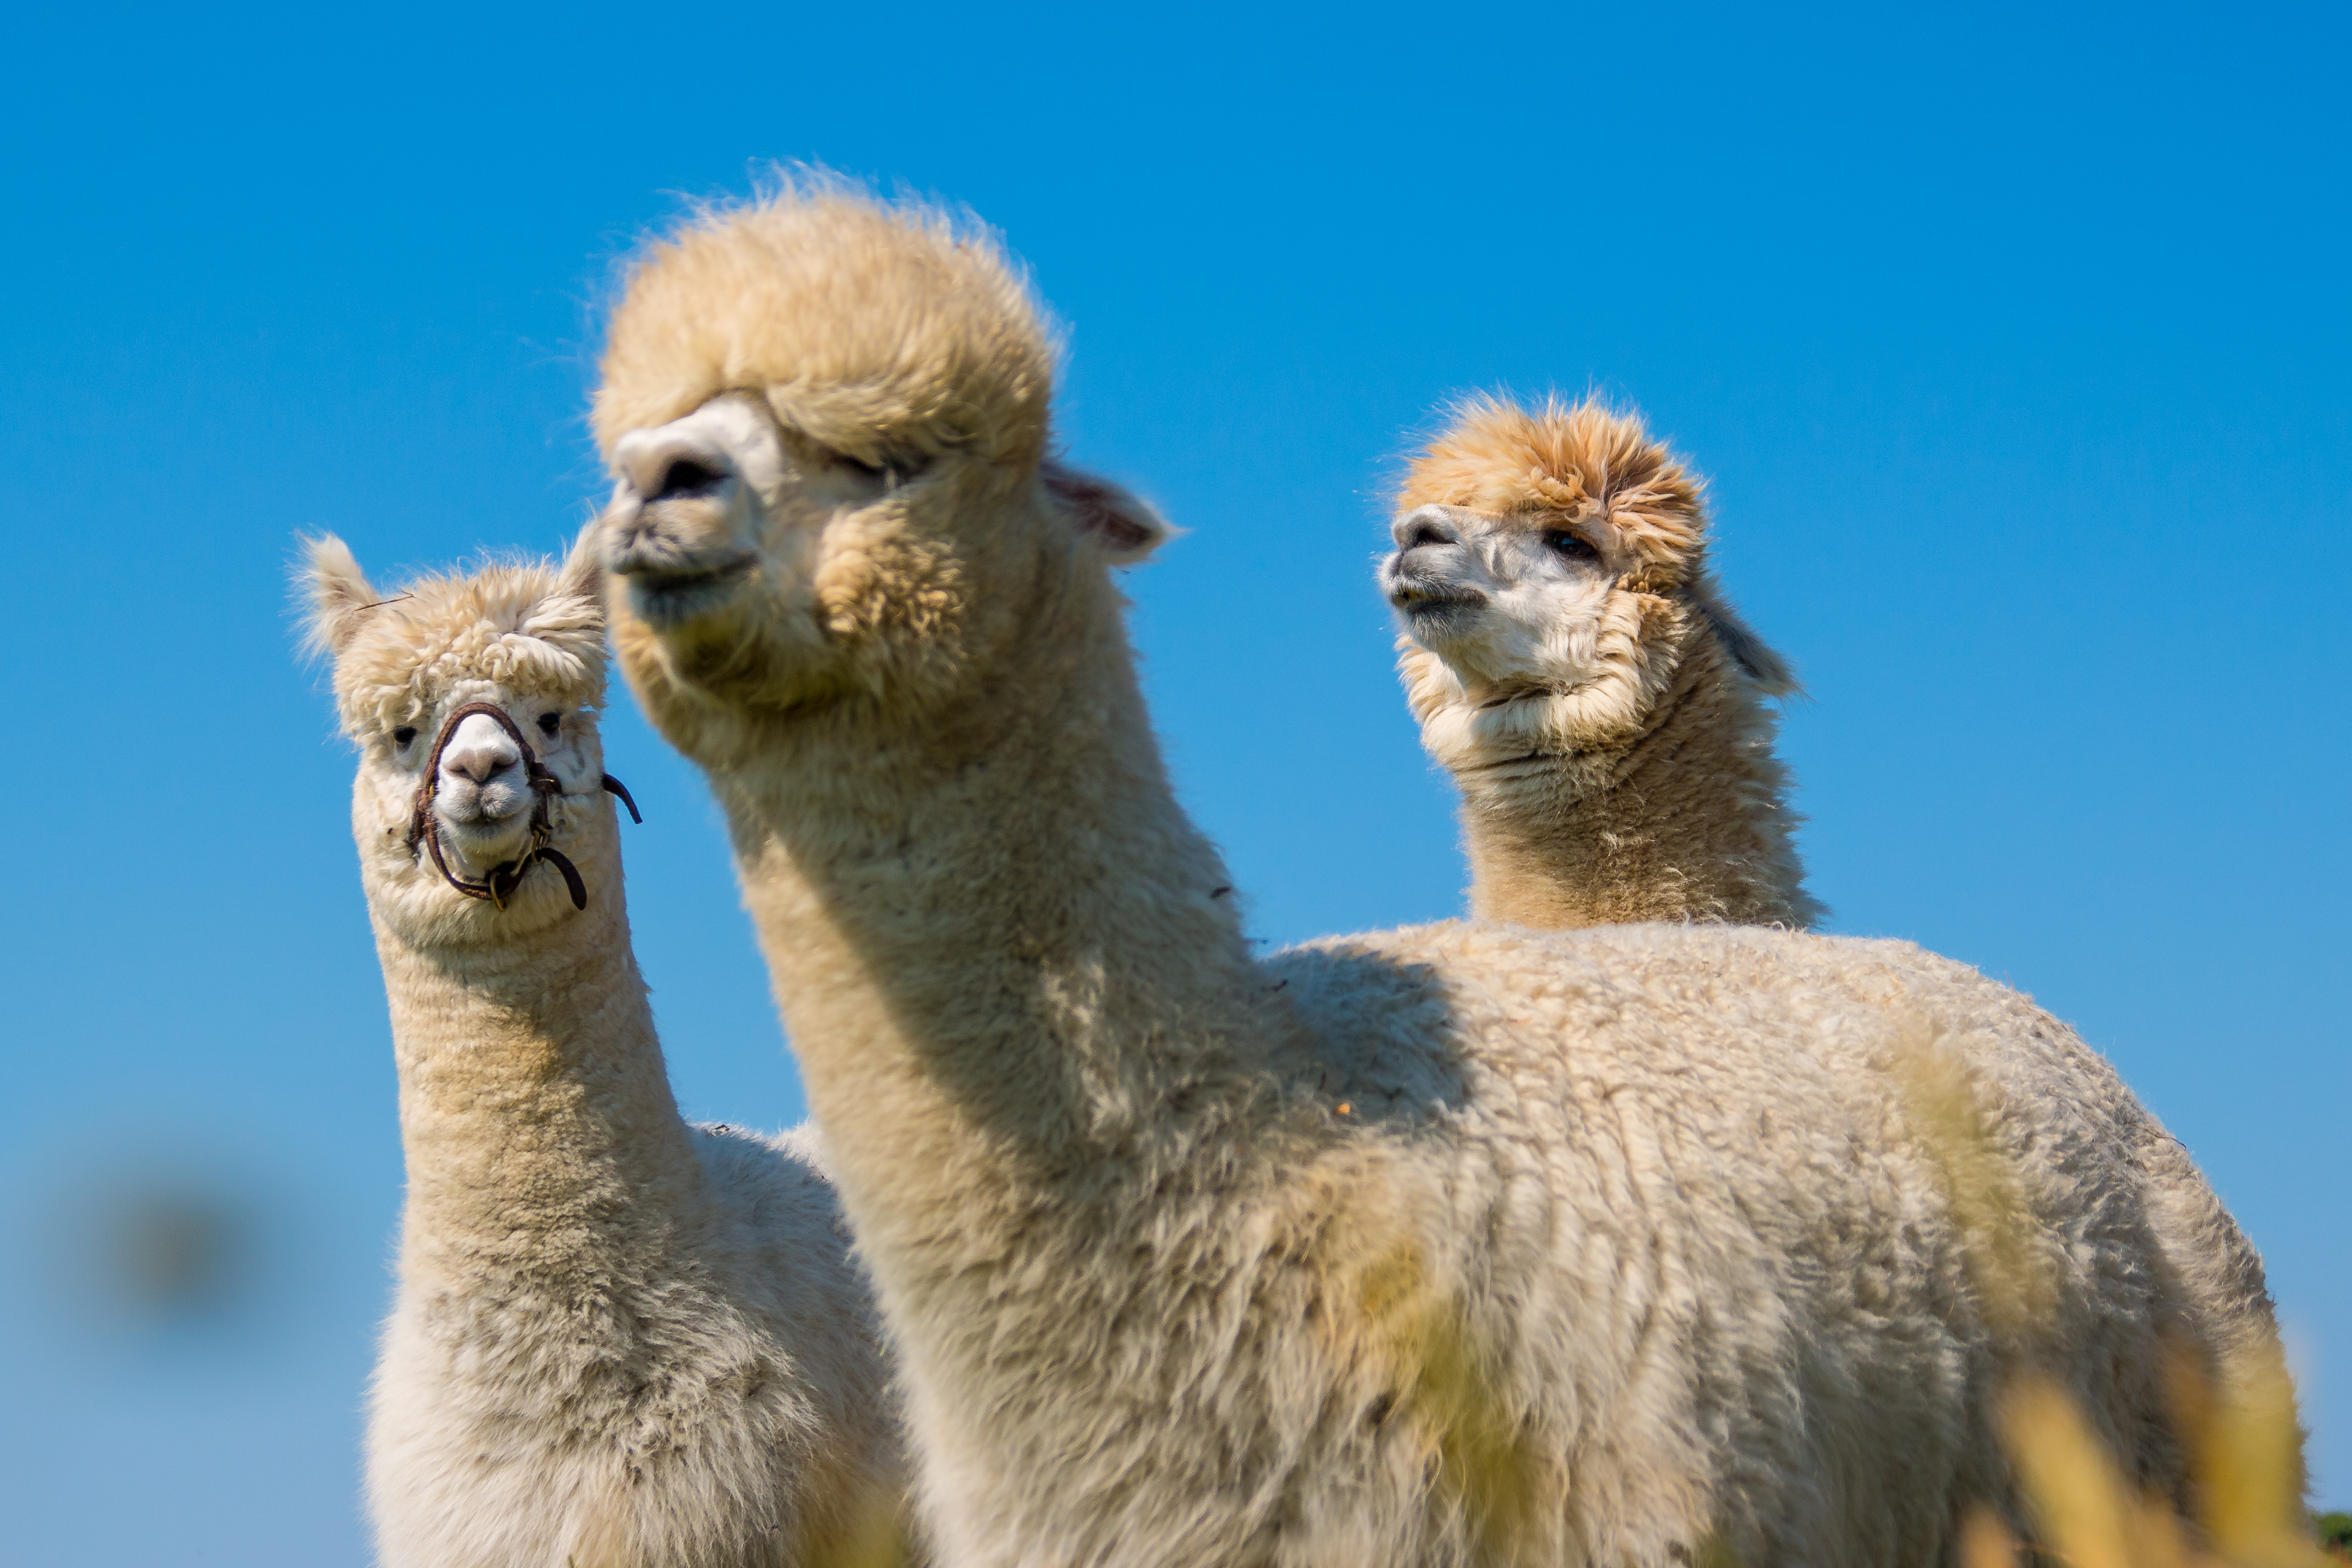 3 alpacas standing with the blue sky in the background in Peru